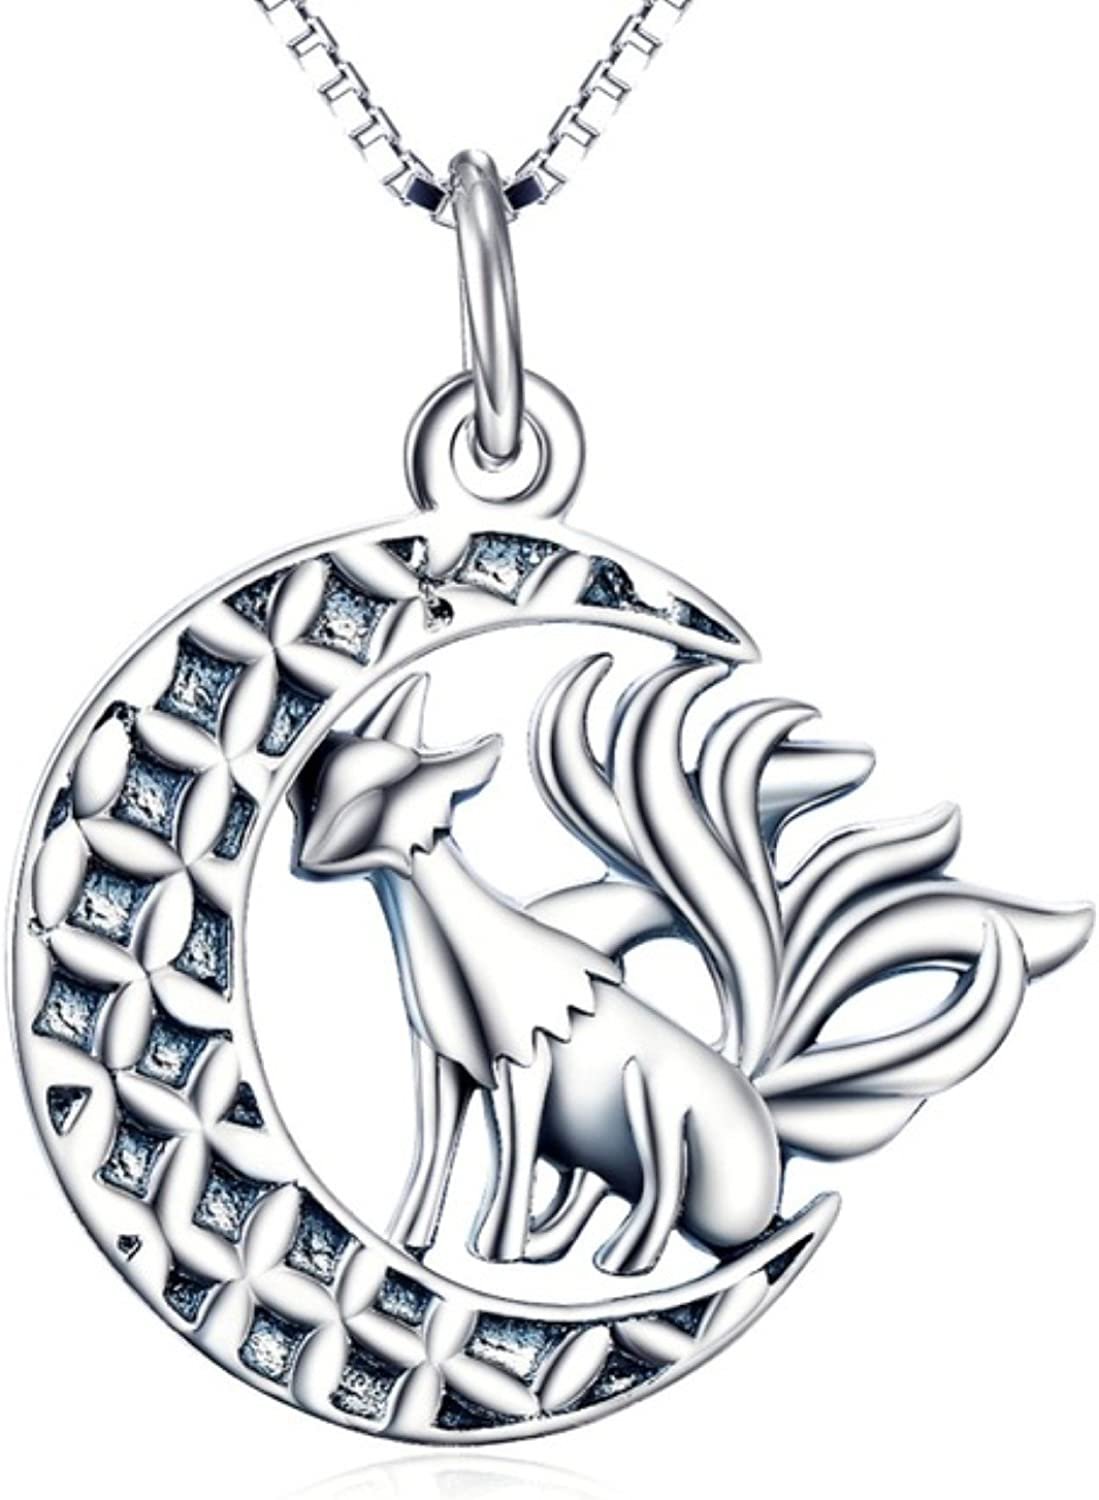 EverReena 925 Sterling Silver Necklace Crescent Moon With Animal Chain Pendant Nine Tailed Fox